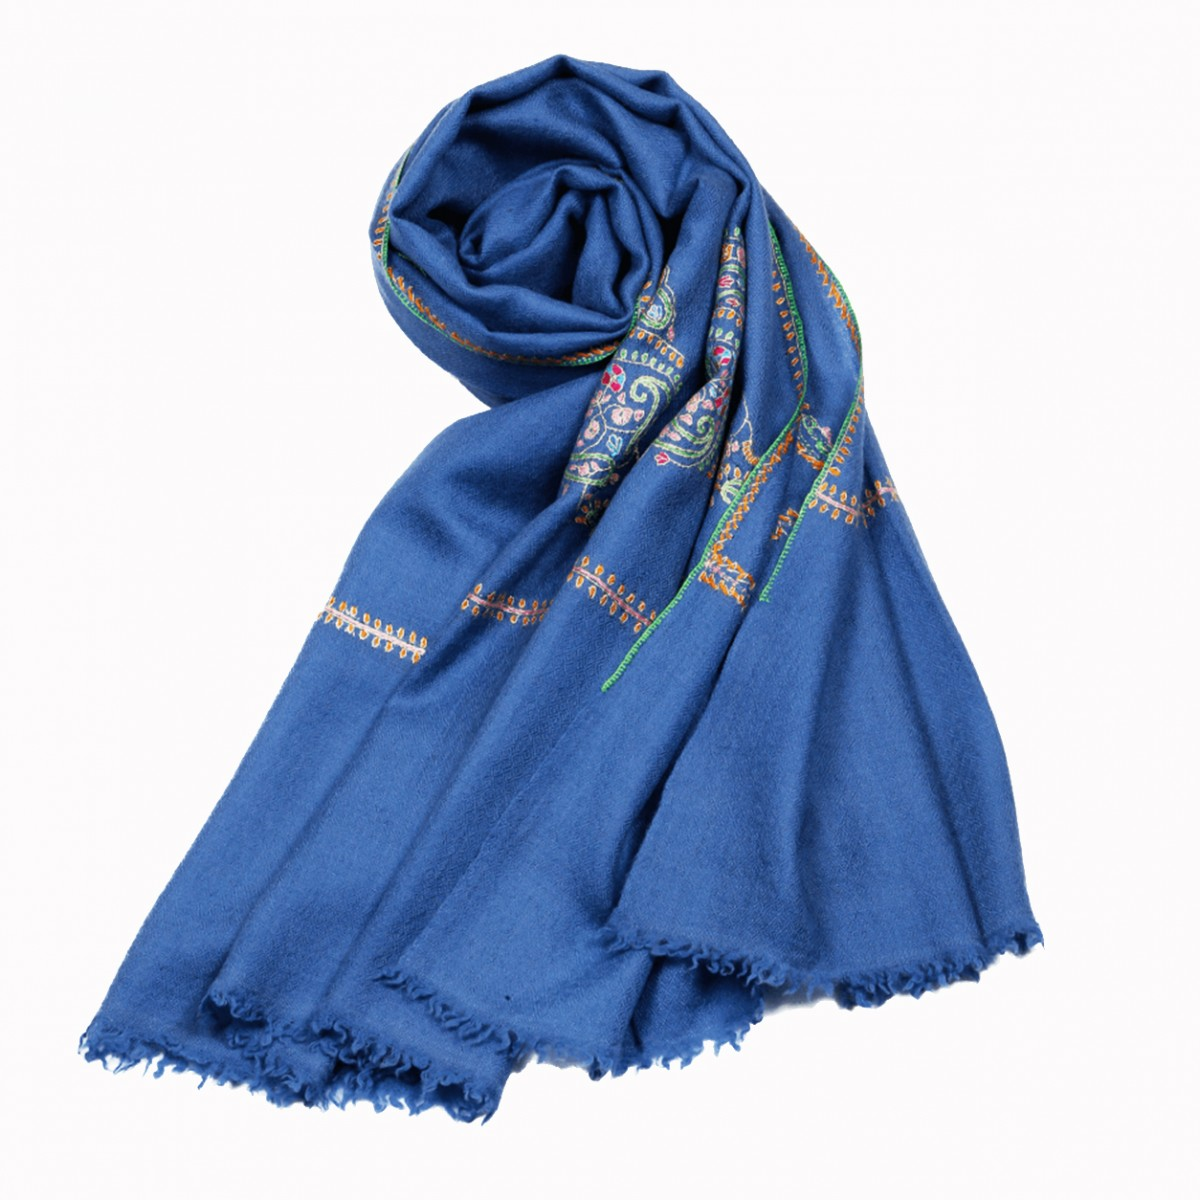 Embroidered Handloom Pashmina Stole - Brilliant Blue